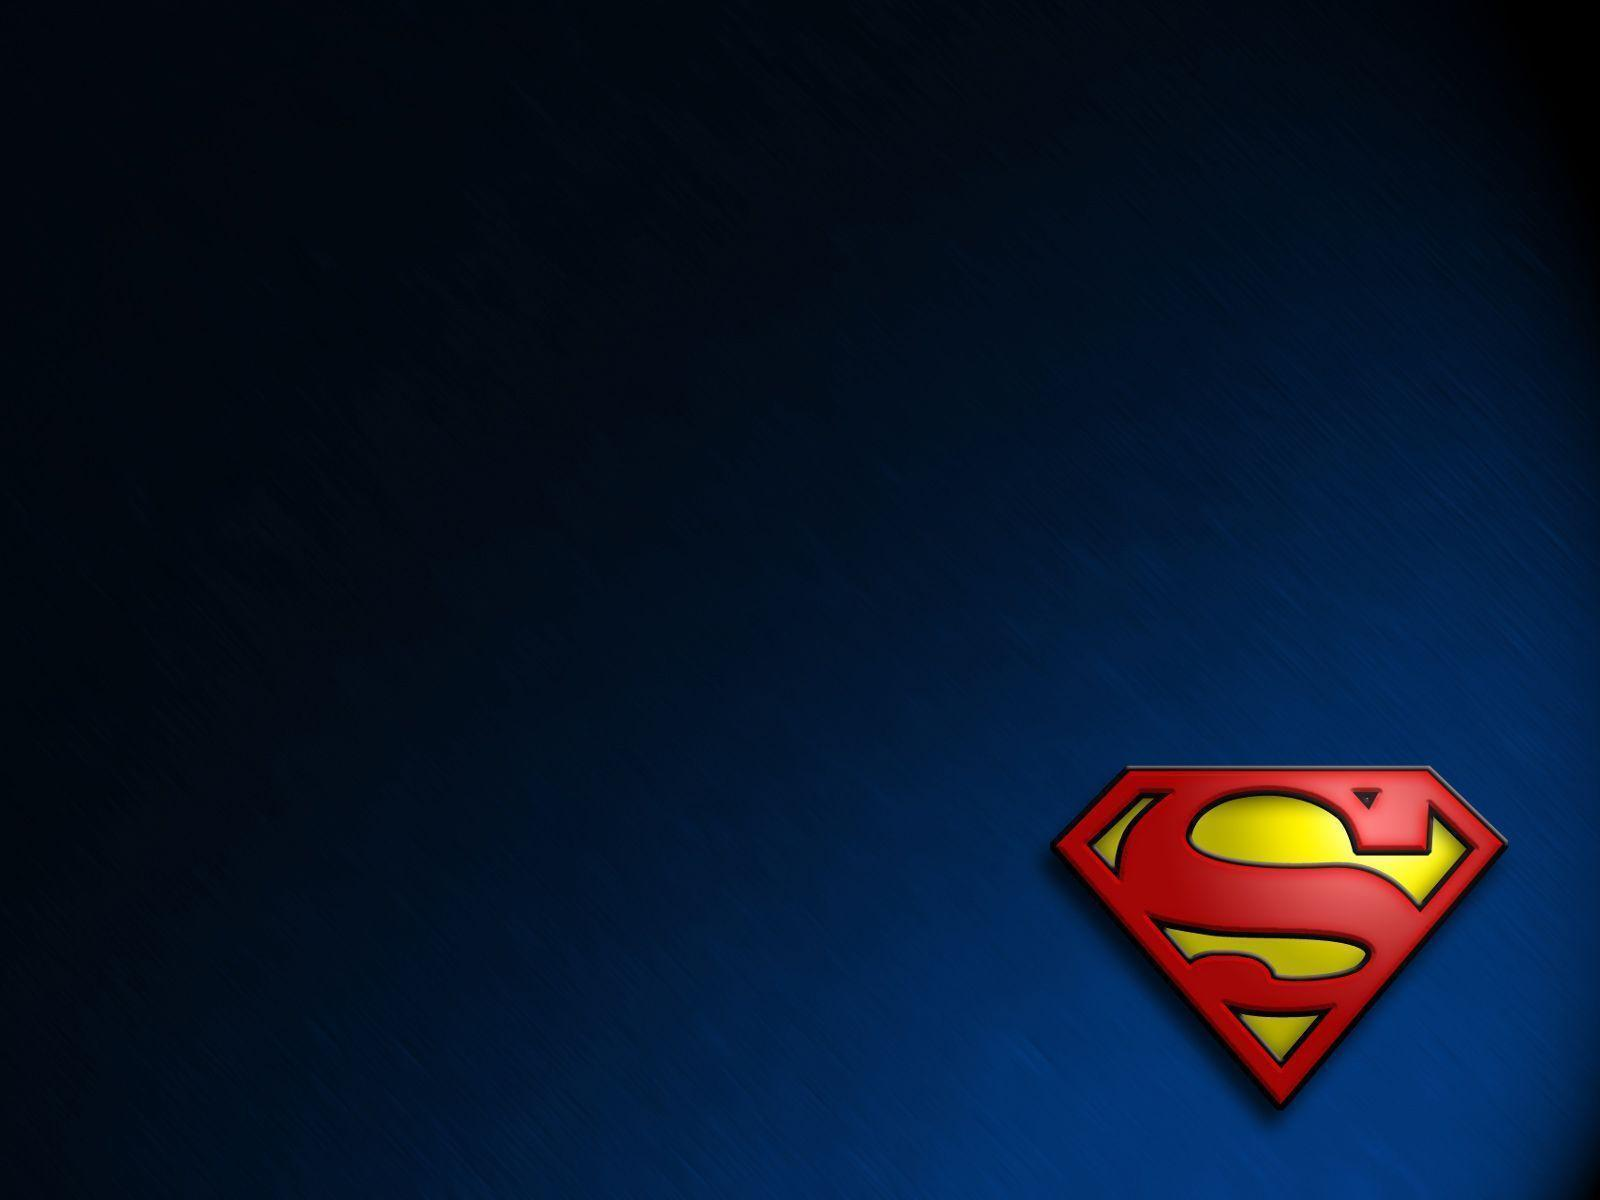 Black Superman Wallpapers - Wallpaper Cave